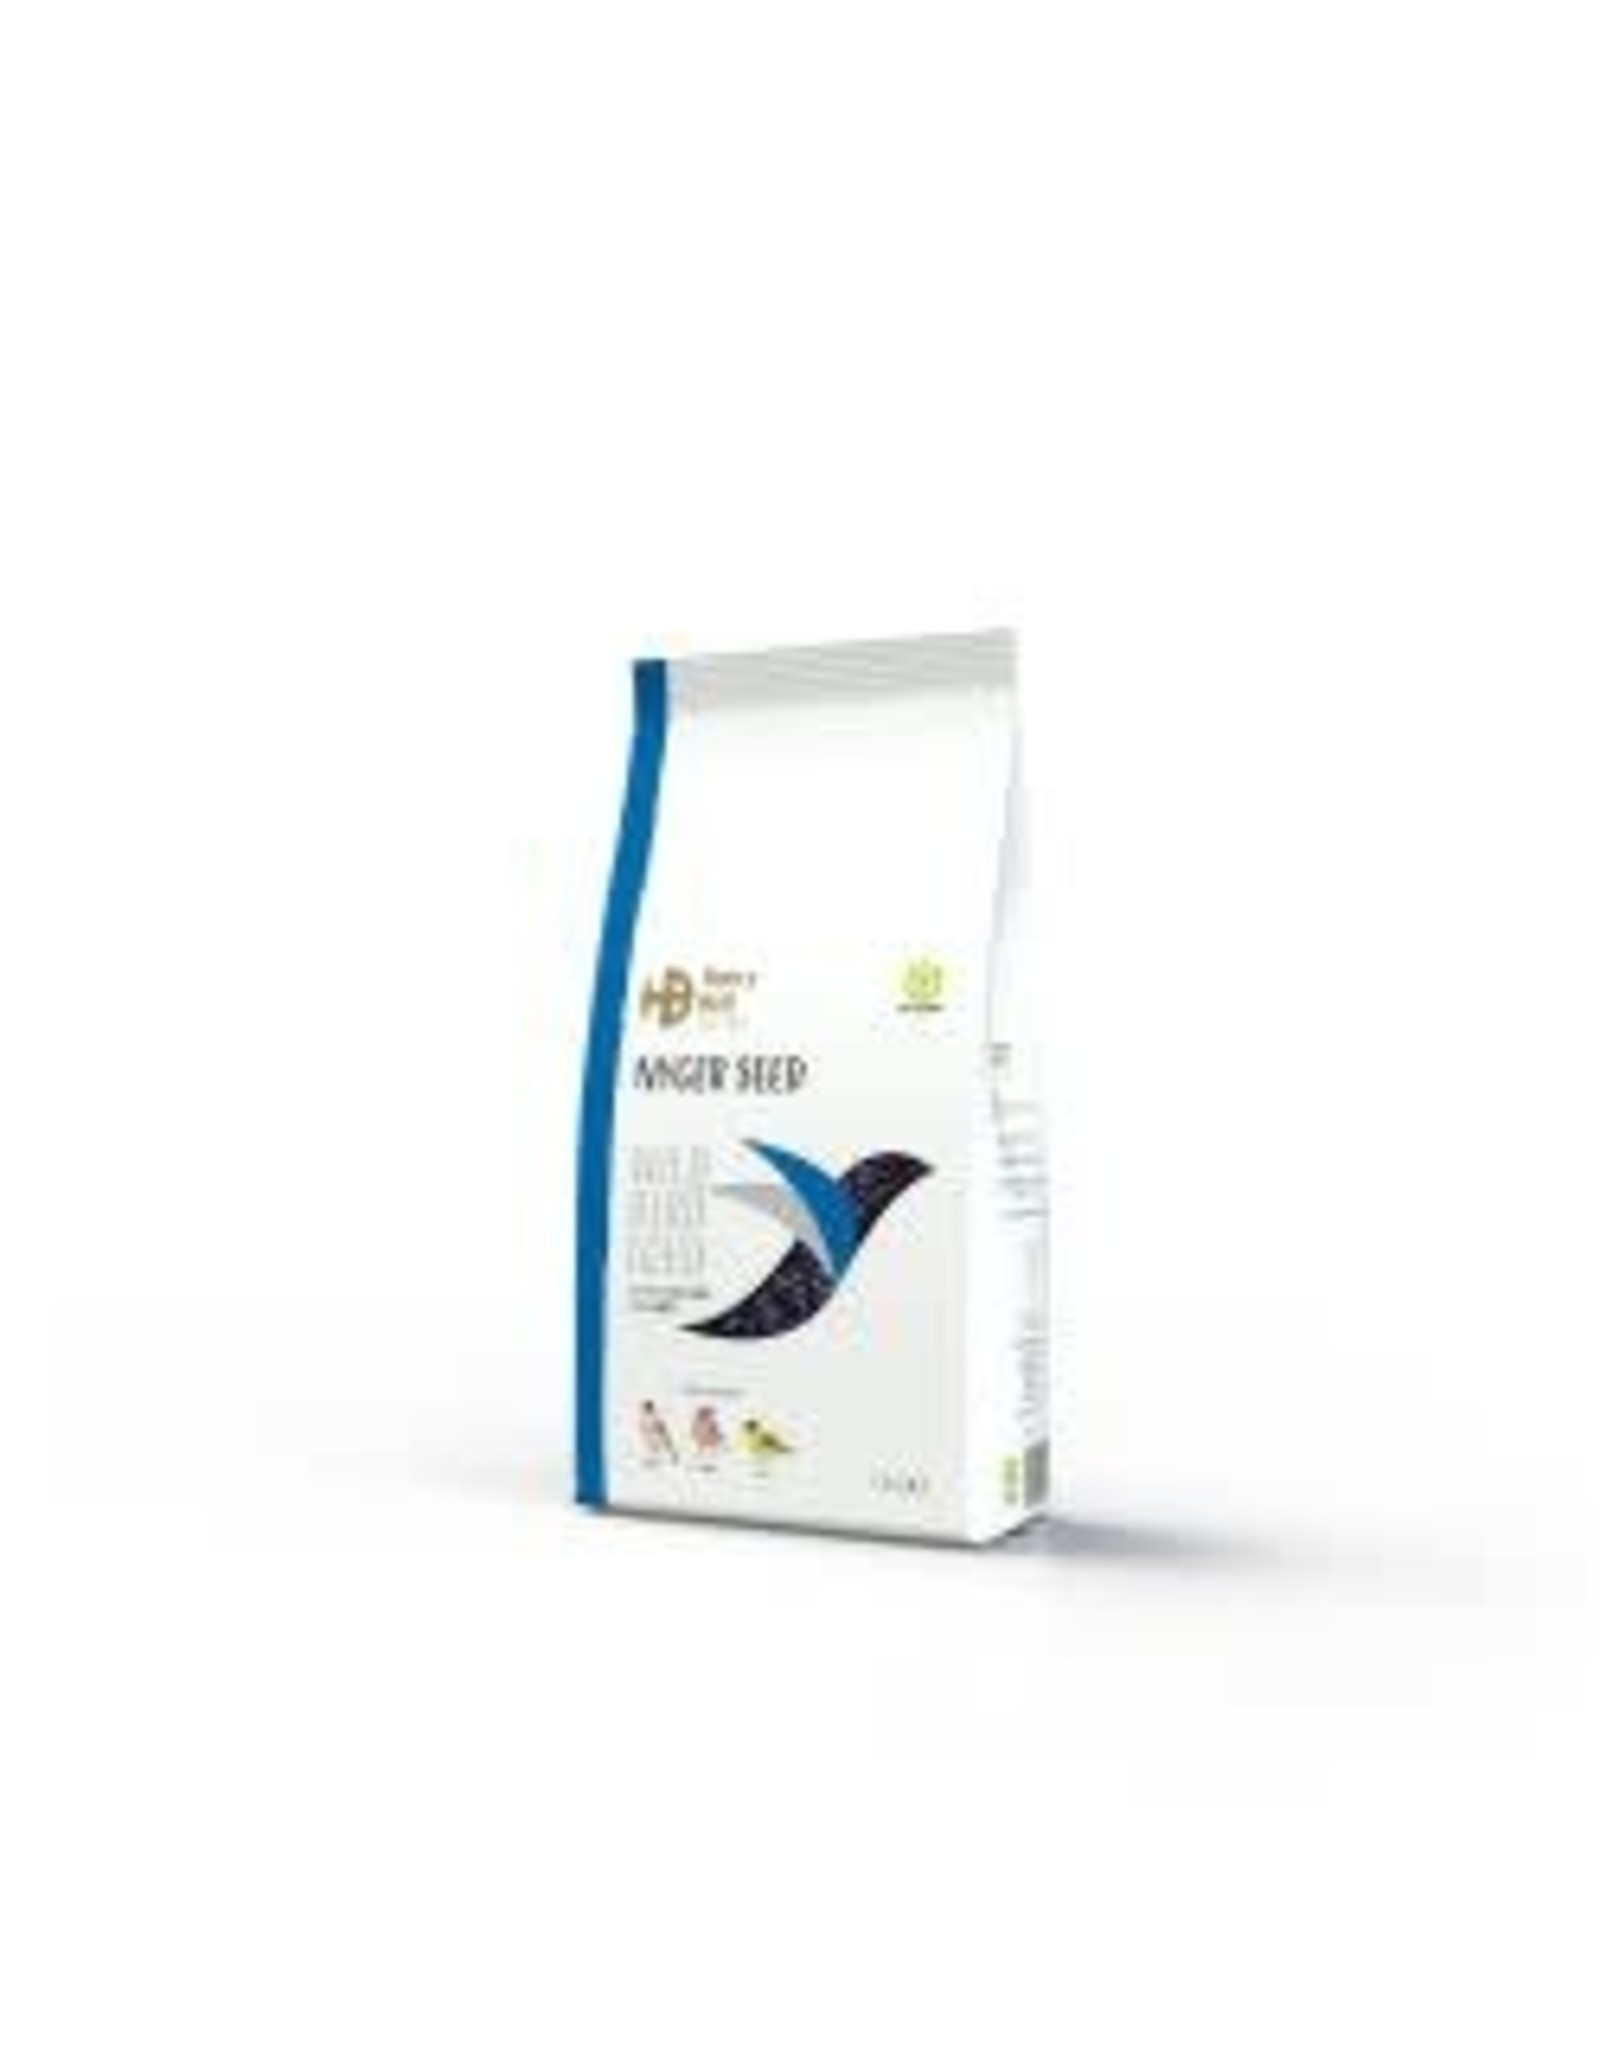 Henry Bell HB Nyger Seed 2kg